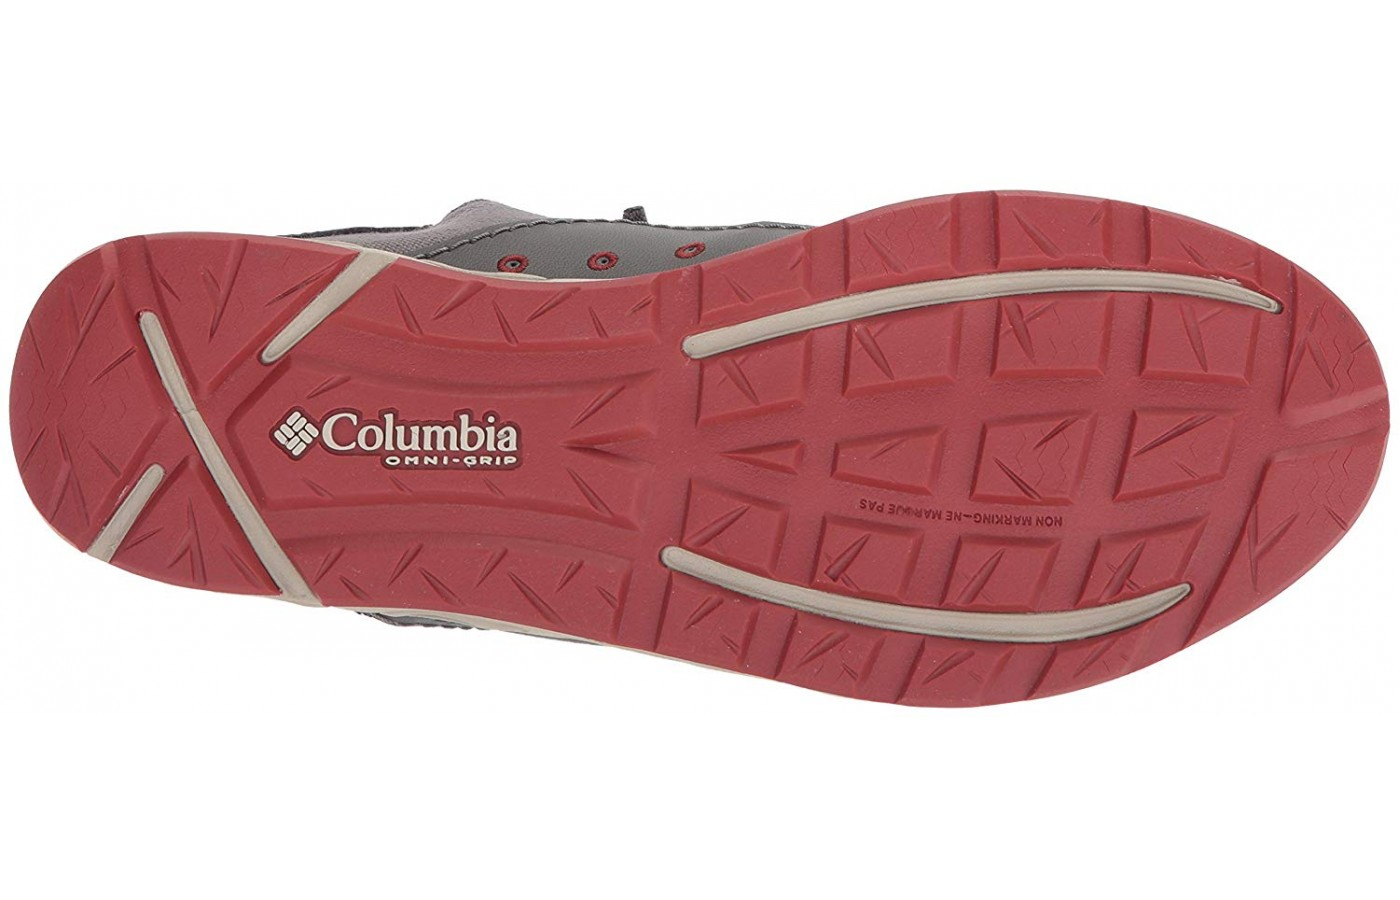 Columbia Bahama Vent Relaxed Sole